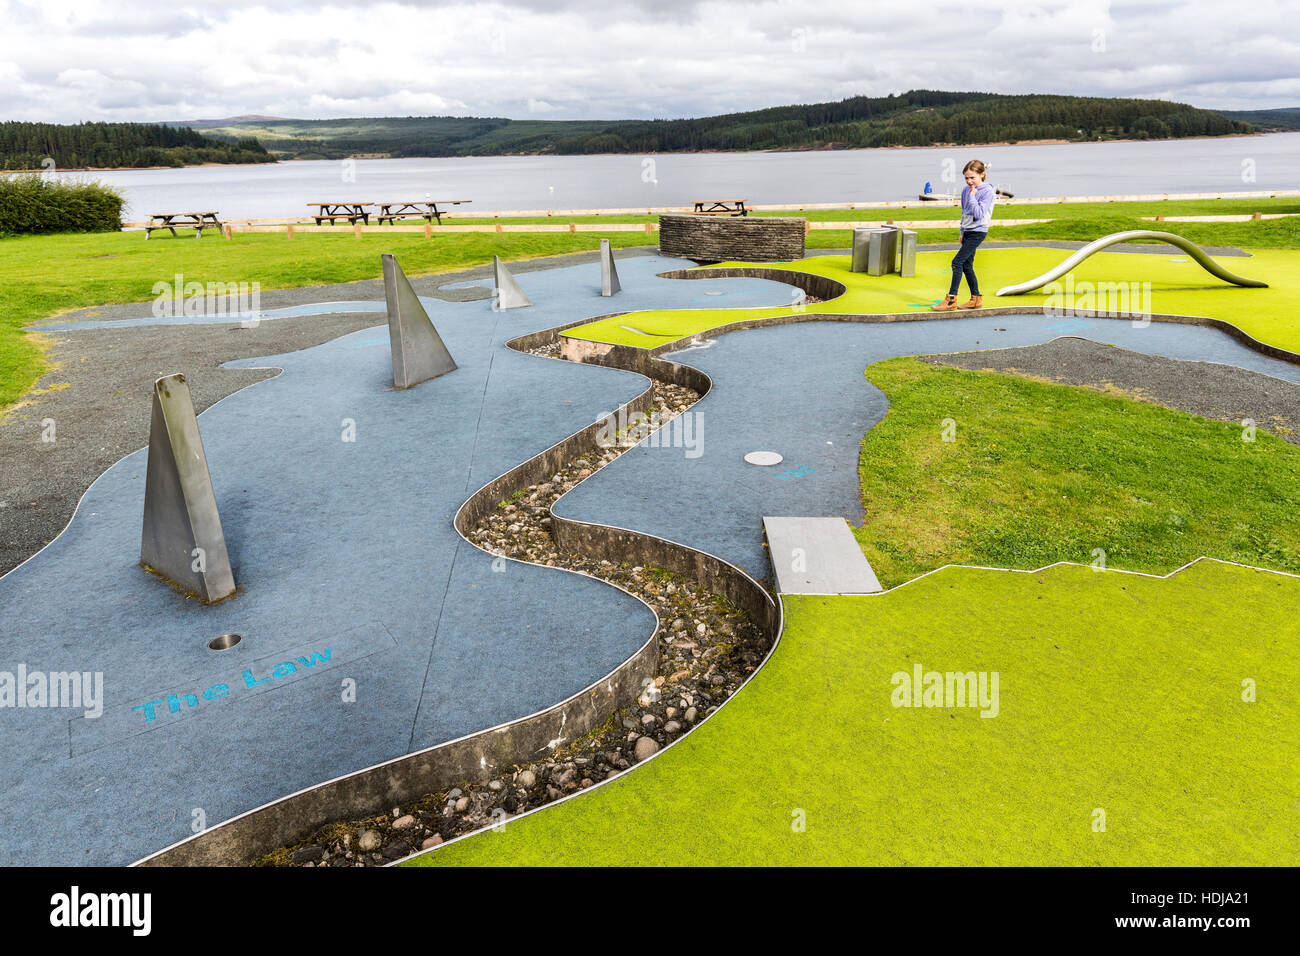 Crazy golf course with local landmarks represented for ach hole, Kielder reservoir, Northumberland, England, UK - Stock Image